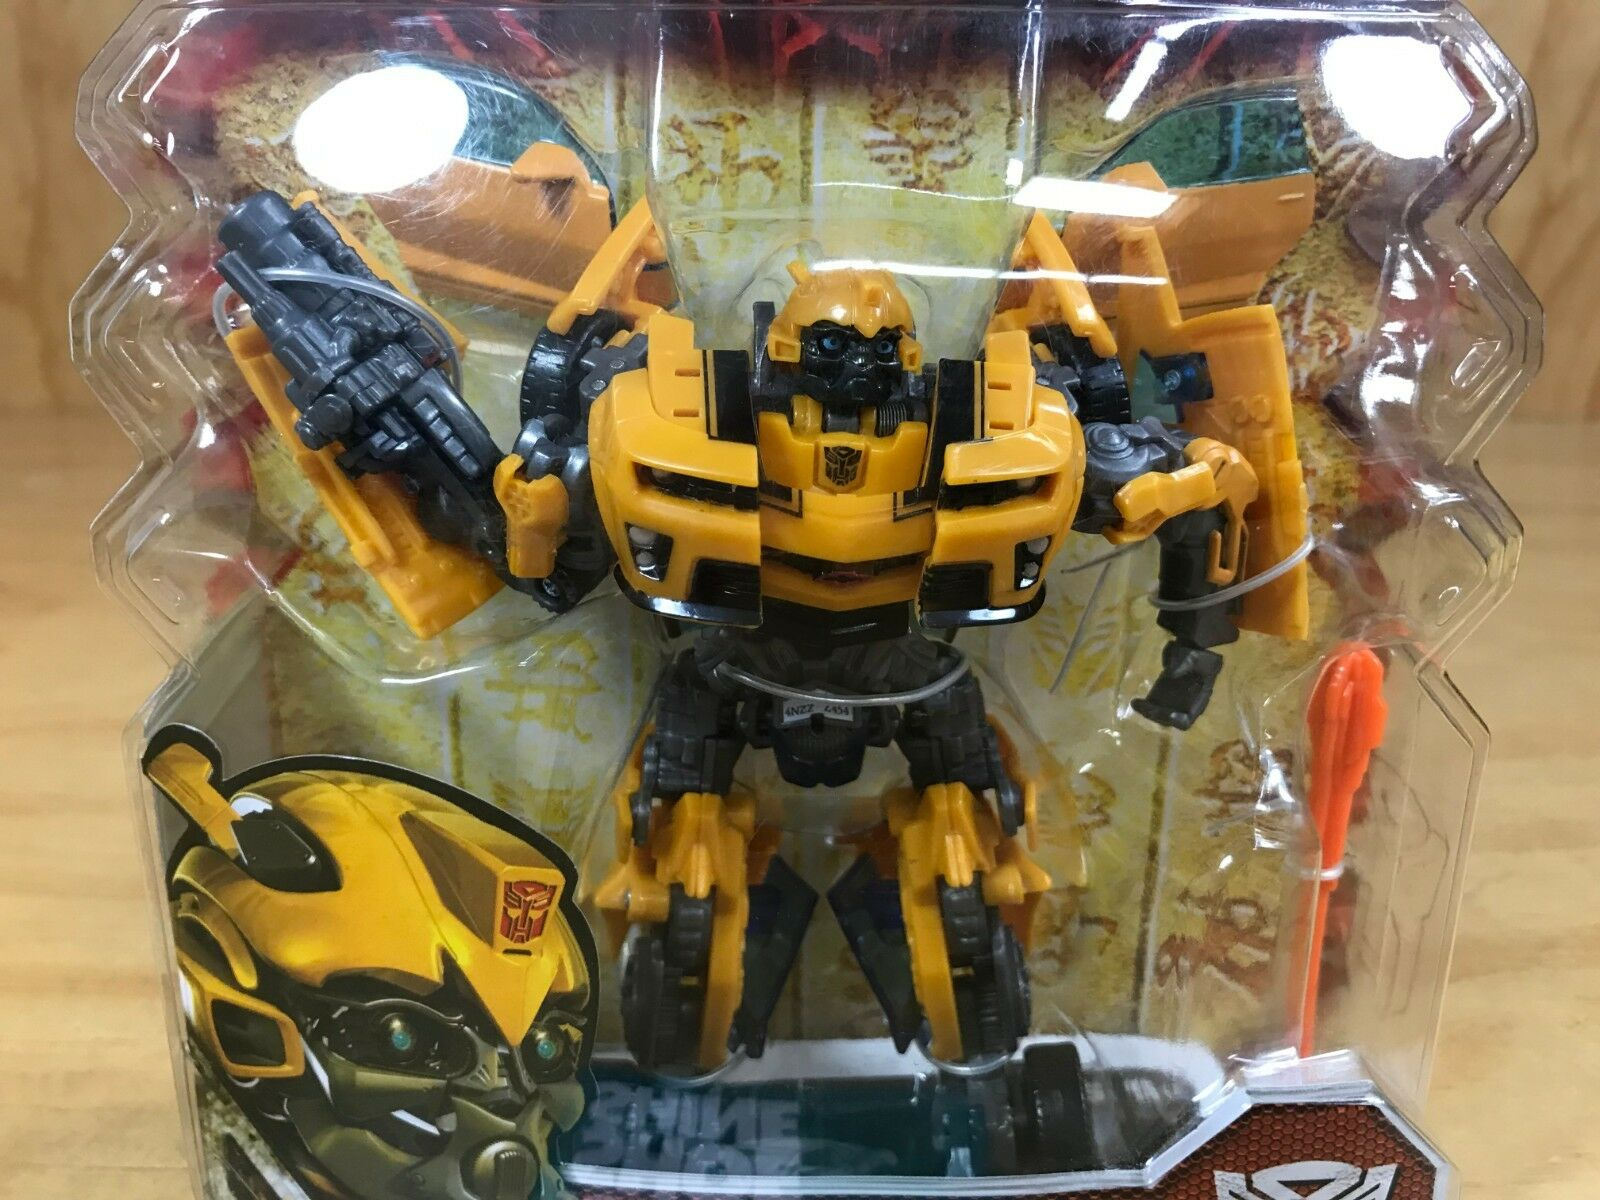 2008 HASBRO TRANSFORMERS REVENGE OF THE FALLEN BUMBLEBEE AUTOBOT FIGURINE NEW